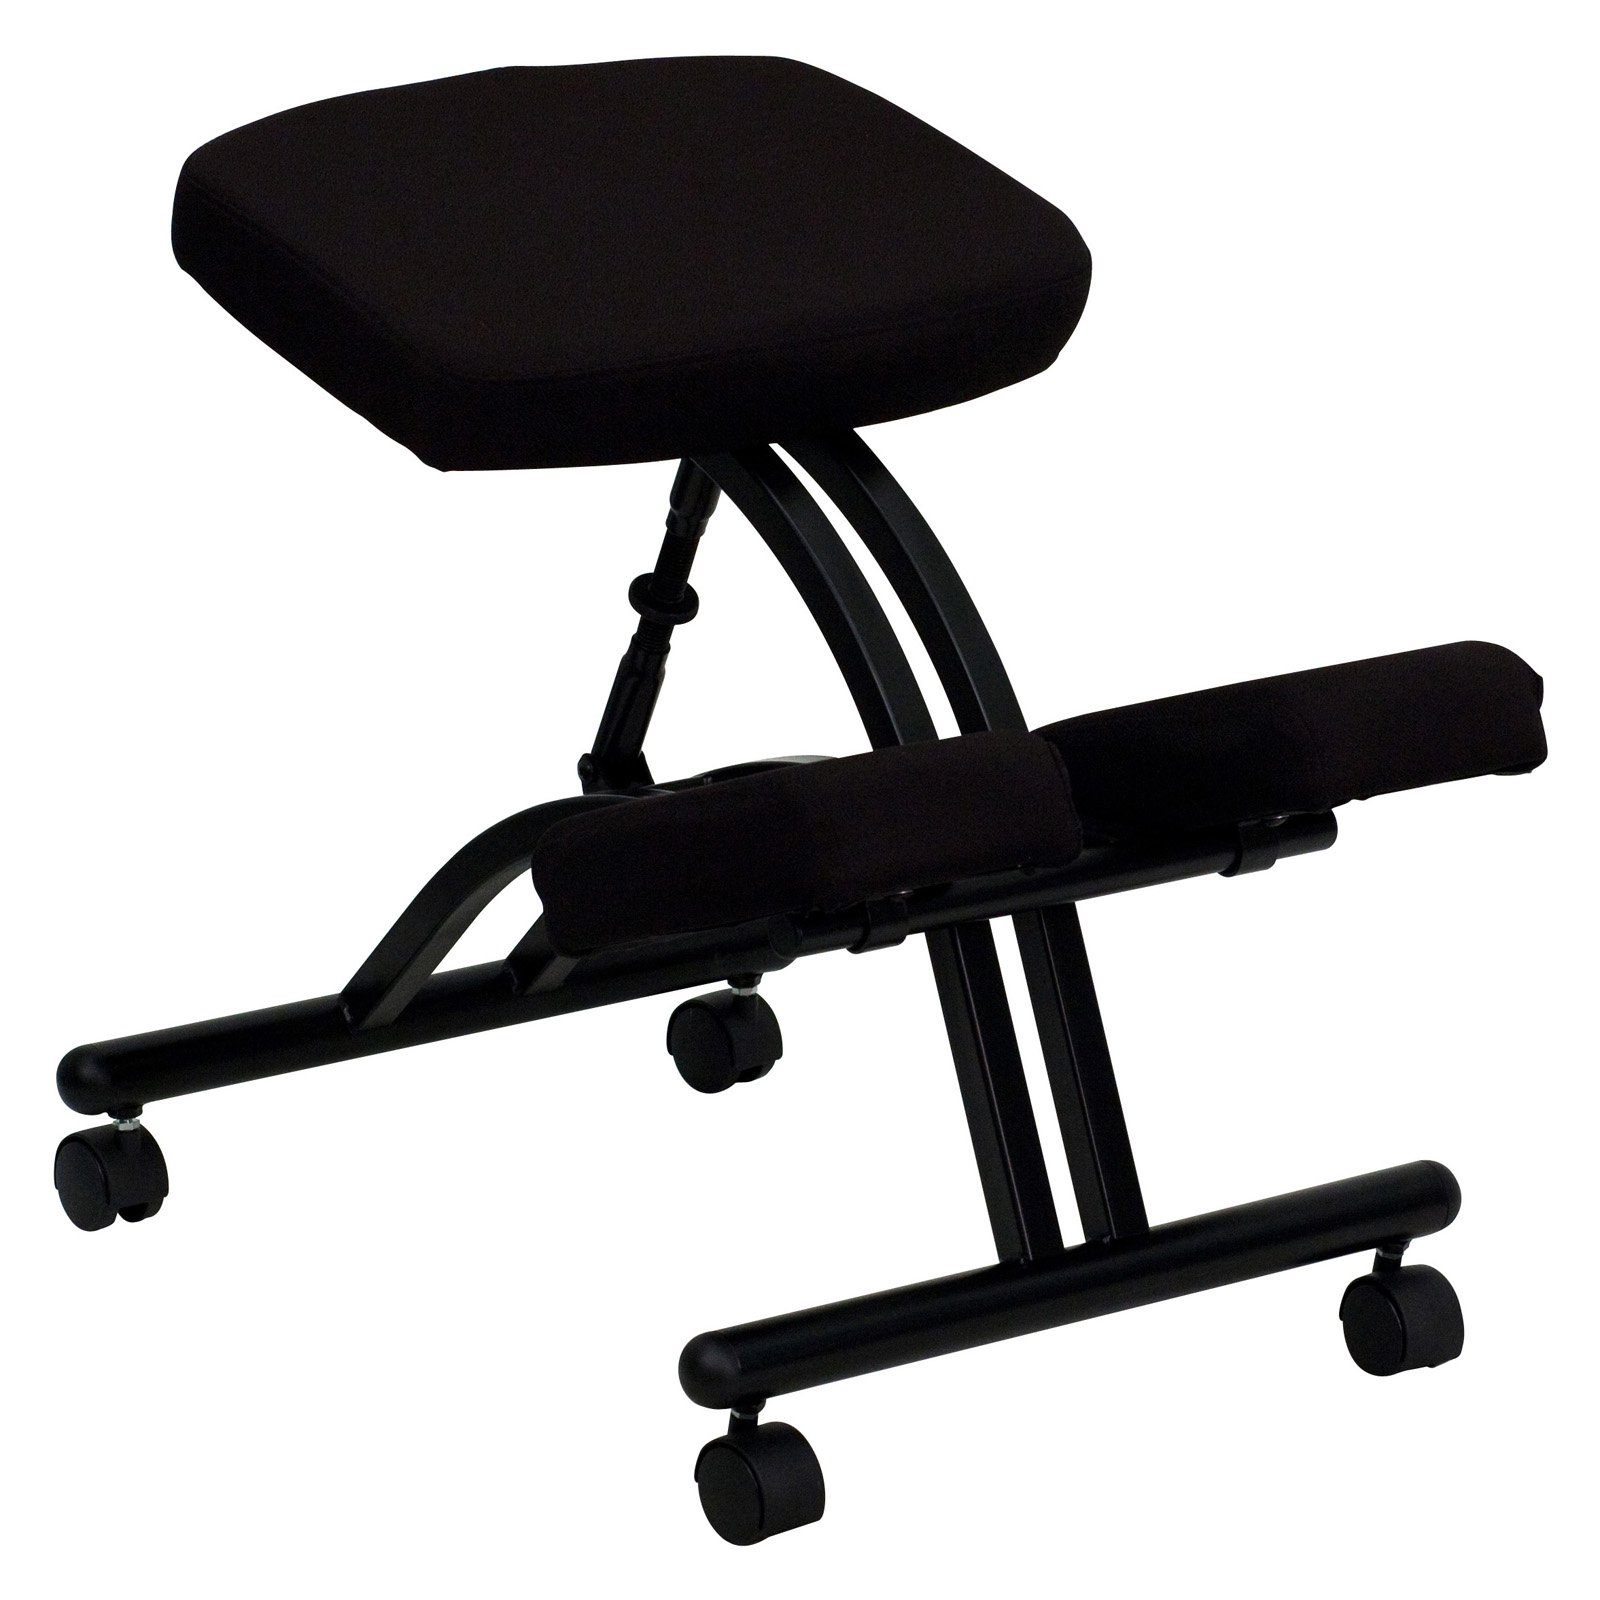 Steel Frame Ergonomic Kneeling Posture fice Chair Black Walmart